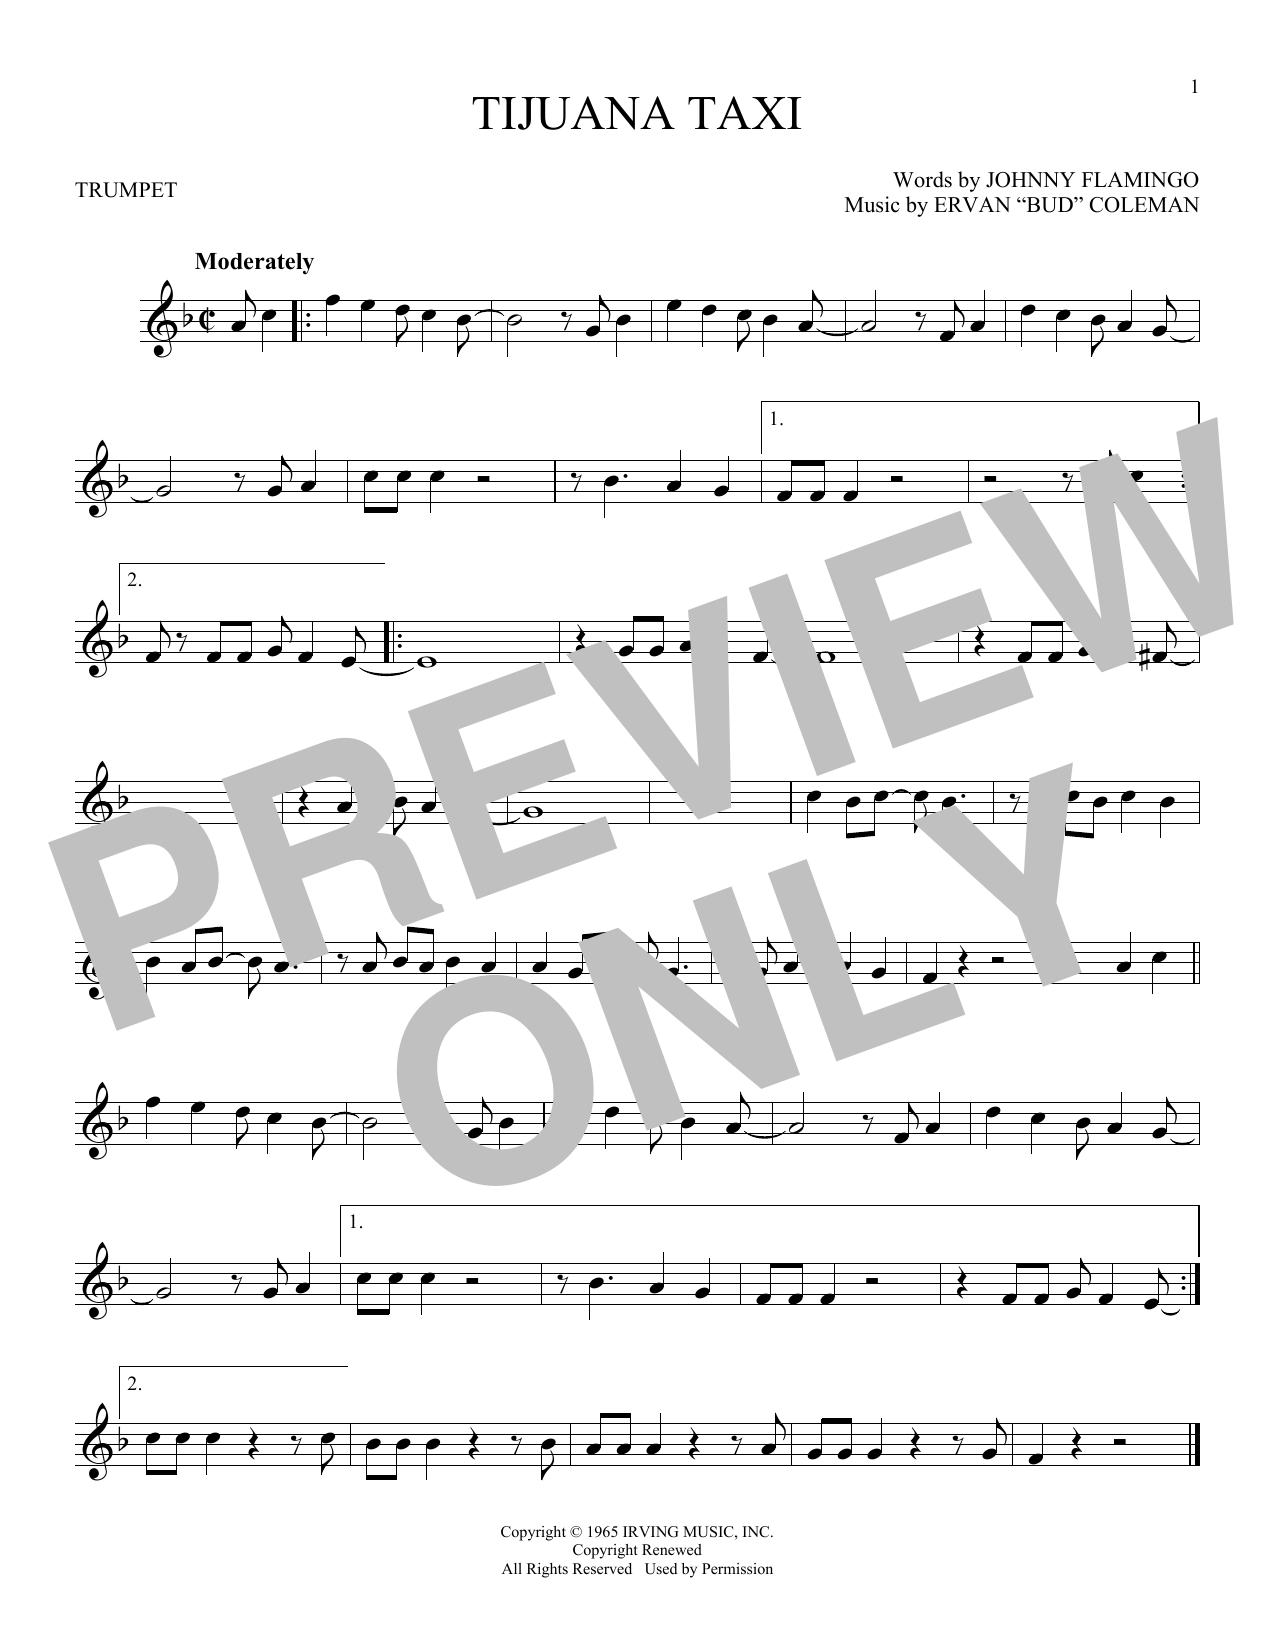 Tijuana Taxi Sheet Music